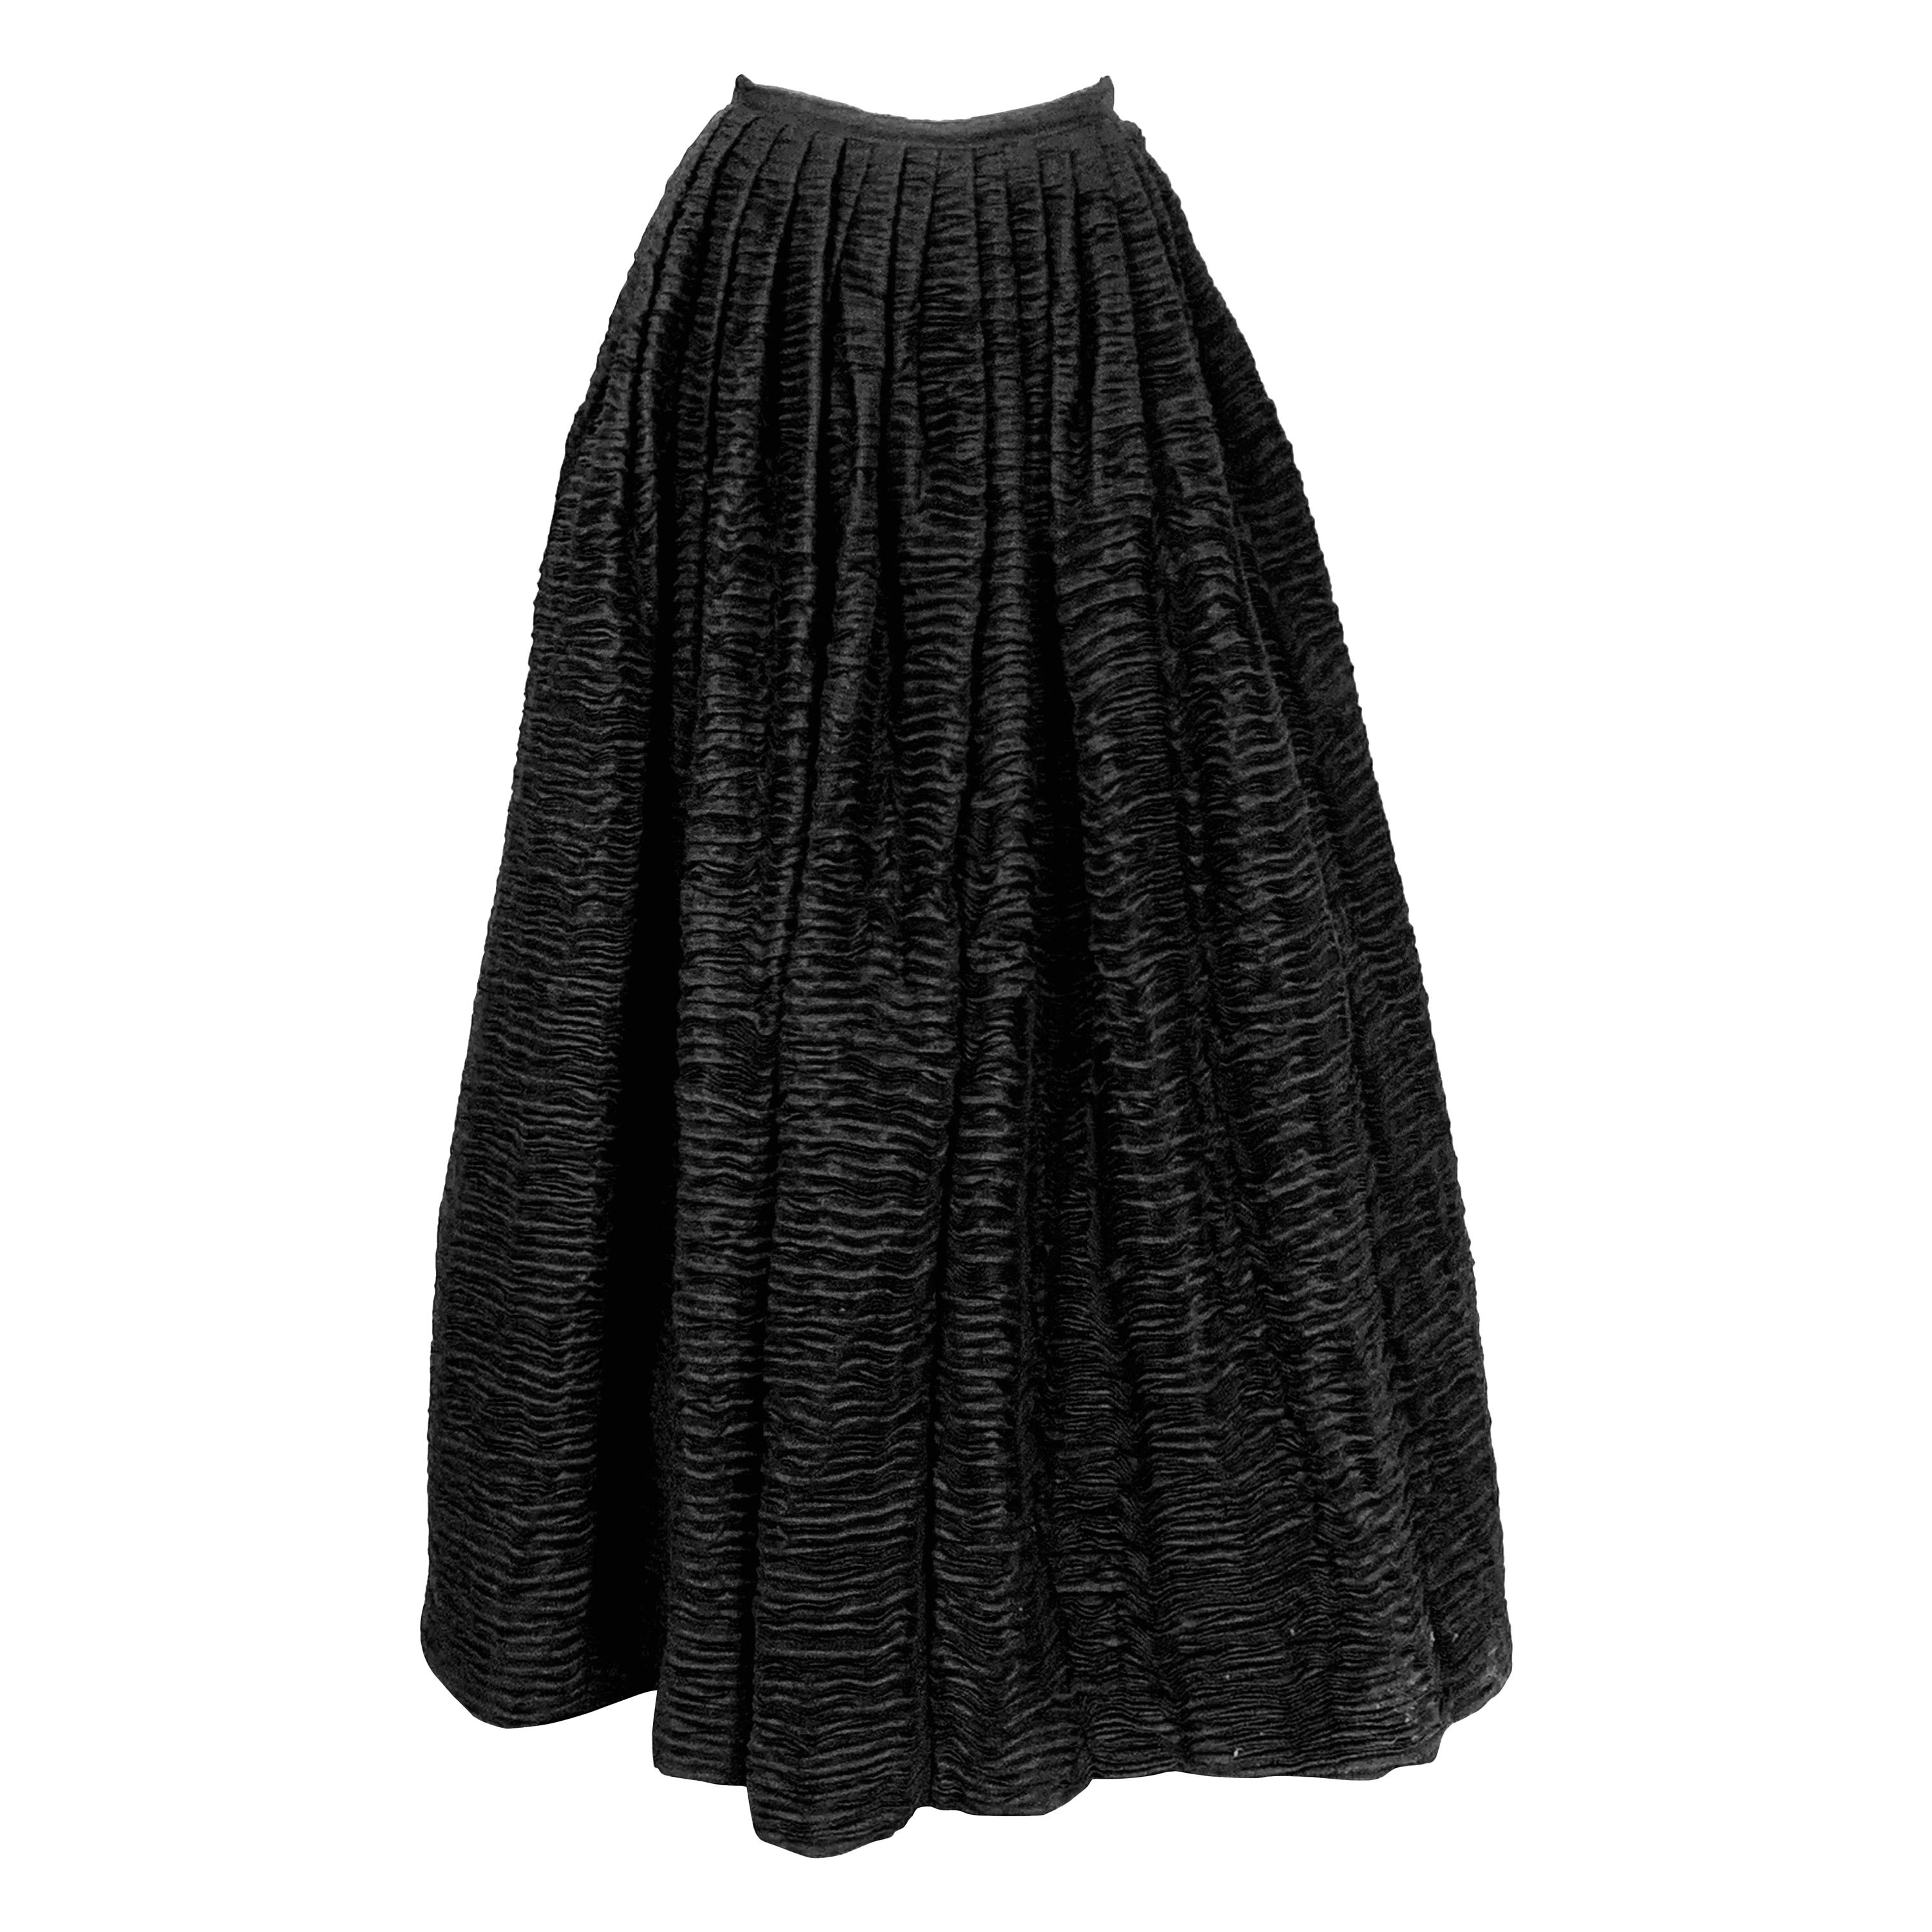 Sybil Connolly Irish Couture Black Hand Pleated Linen Evening Skirt